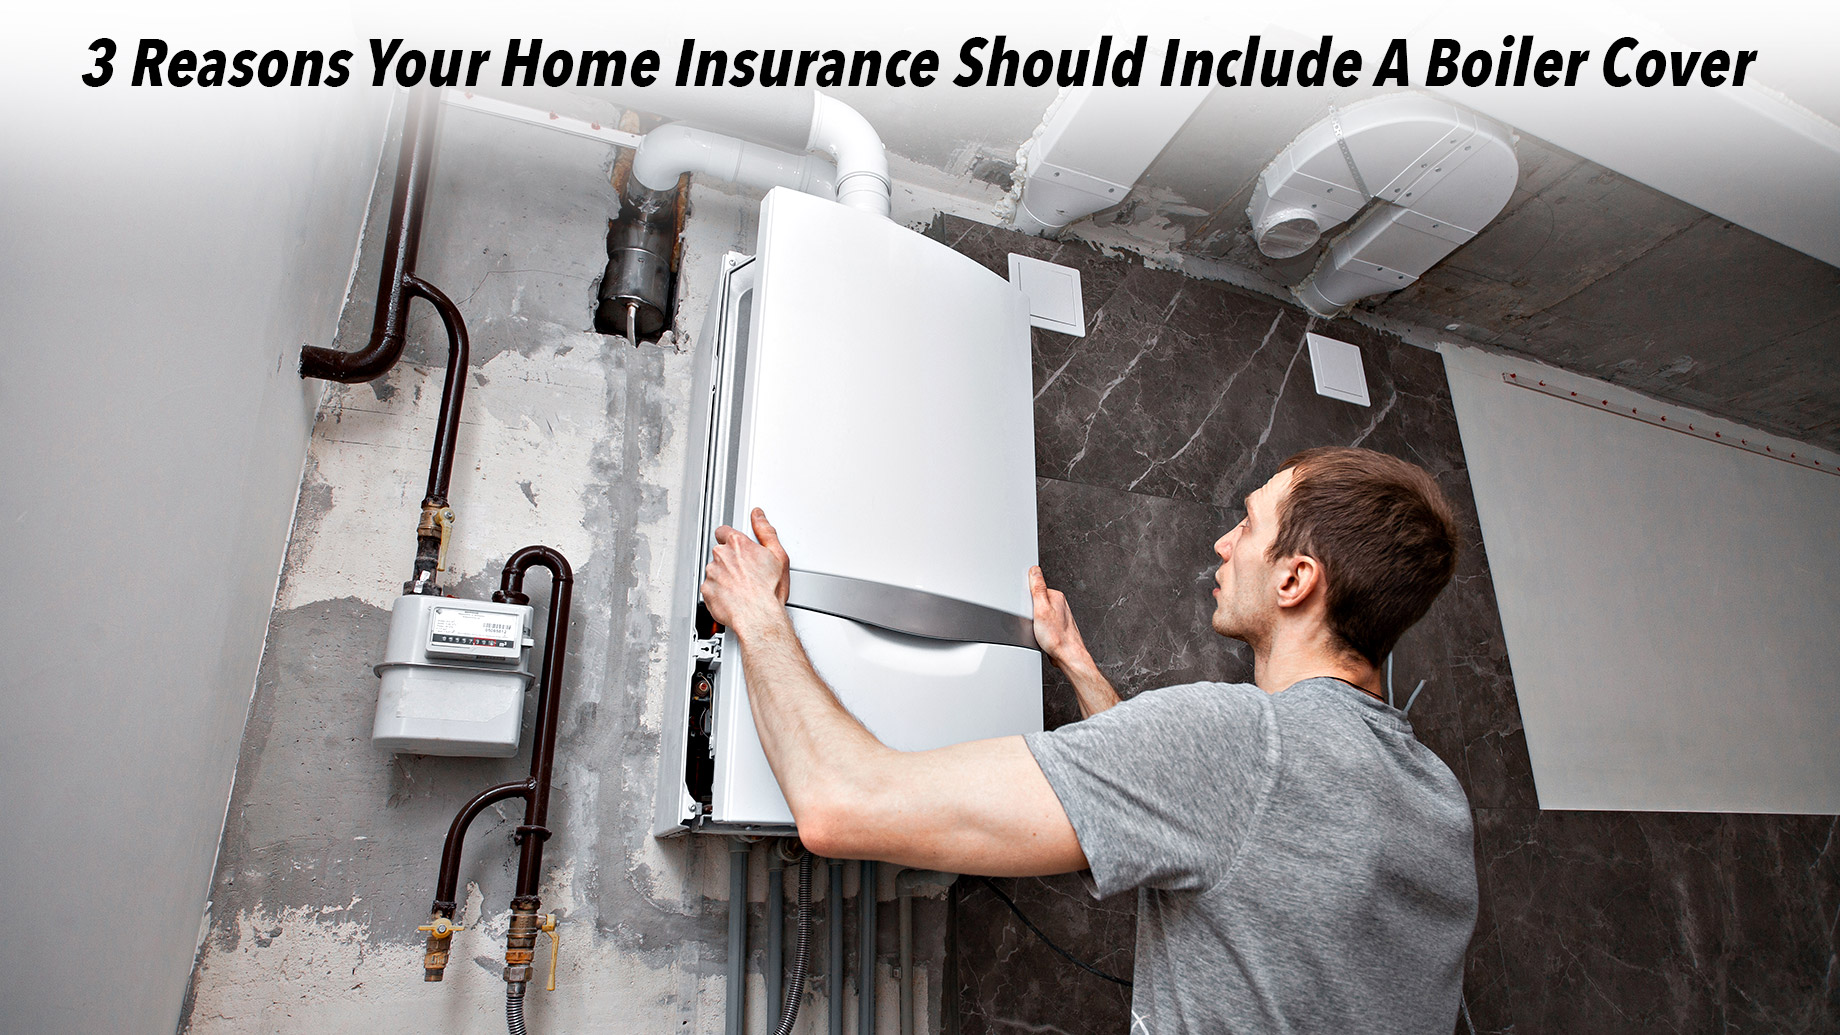 3 Reasons Your Home Insurance Should Include A Boiler Cover